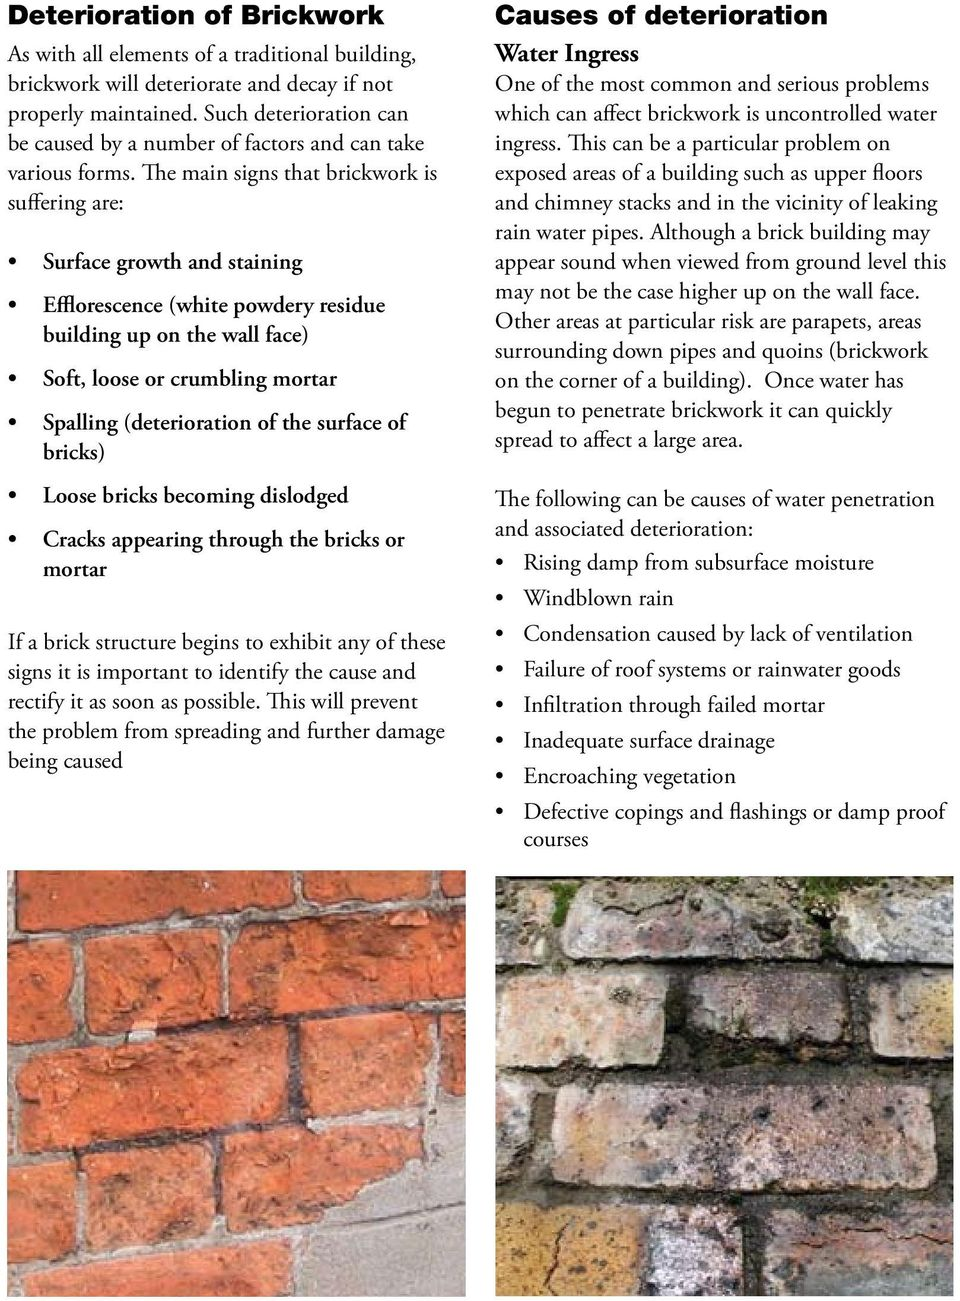 The main signs that brickwork is suffering are: Surface growth and staining Efflorescence (white powdery residue building up on the wall face) Soft, loose or crumbling mortar Spalling (deterioration